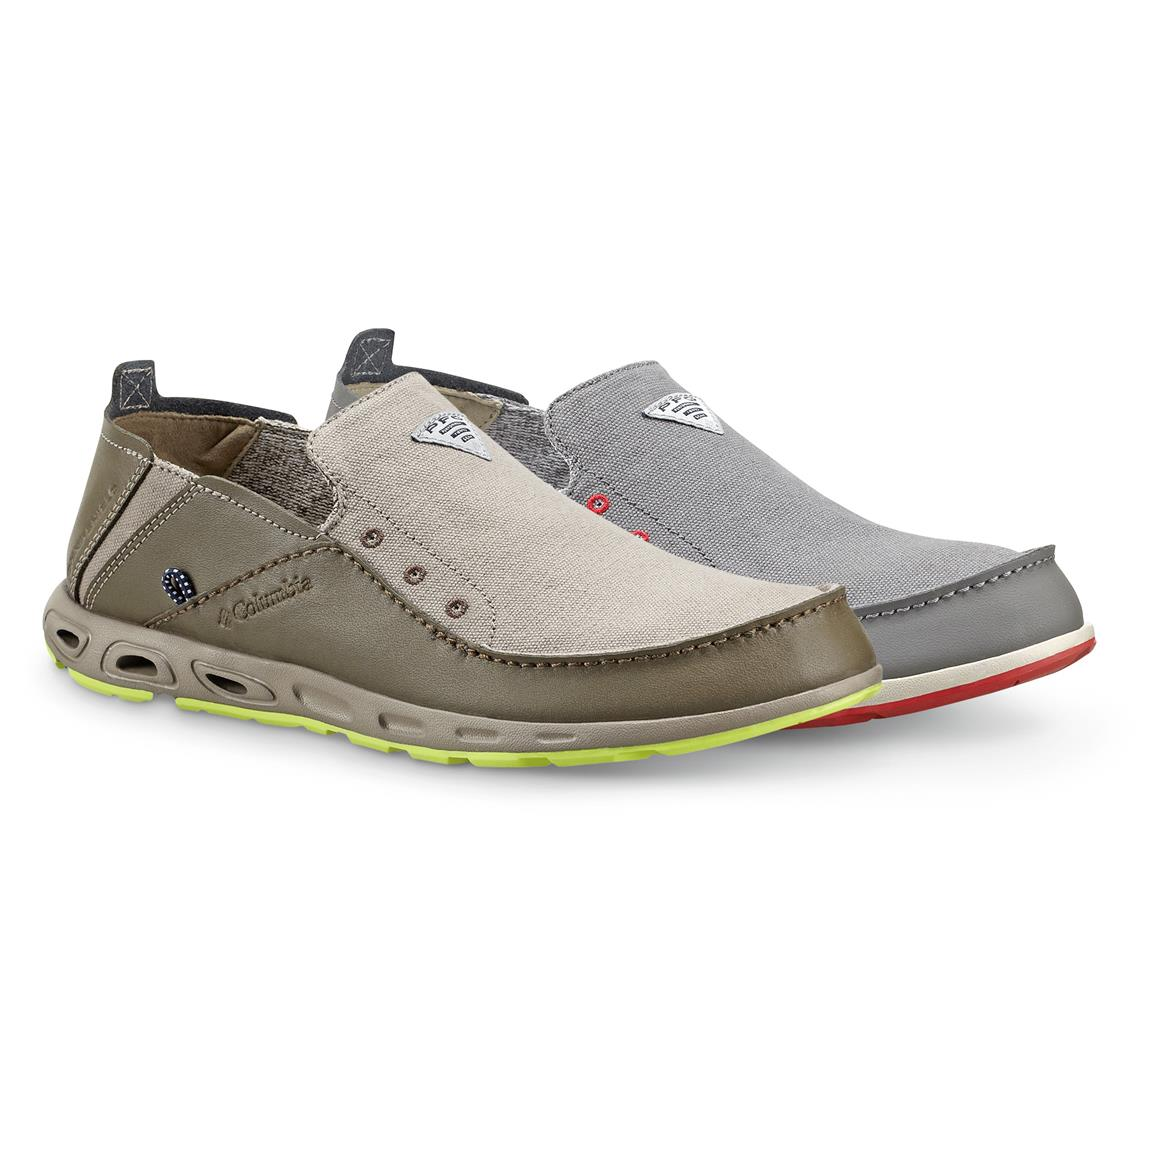 Columbia Men's Bahama Vent PFG Slip-On Boat Shoes